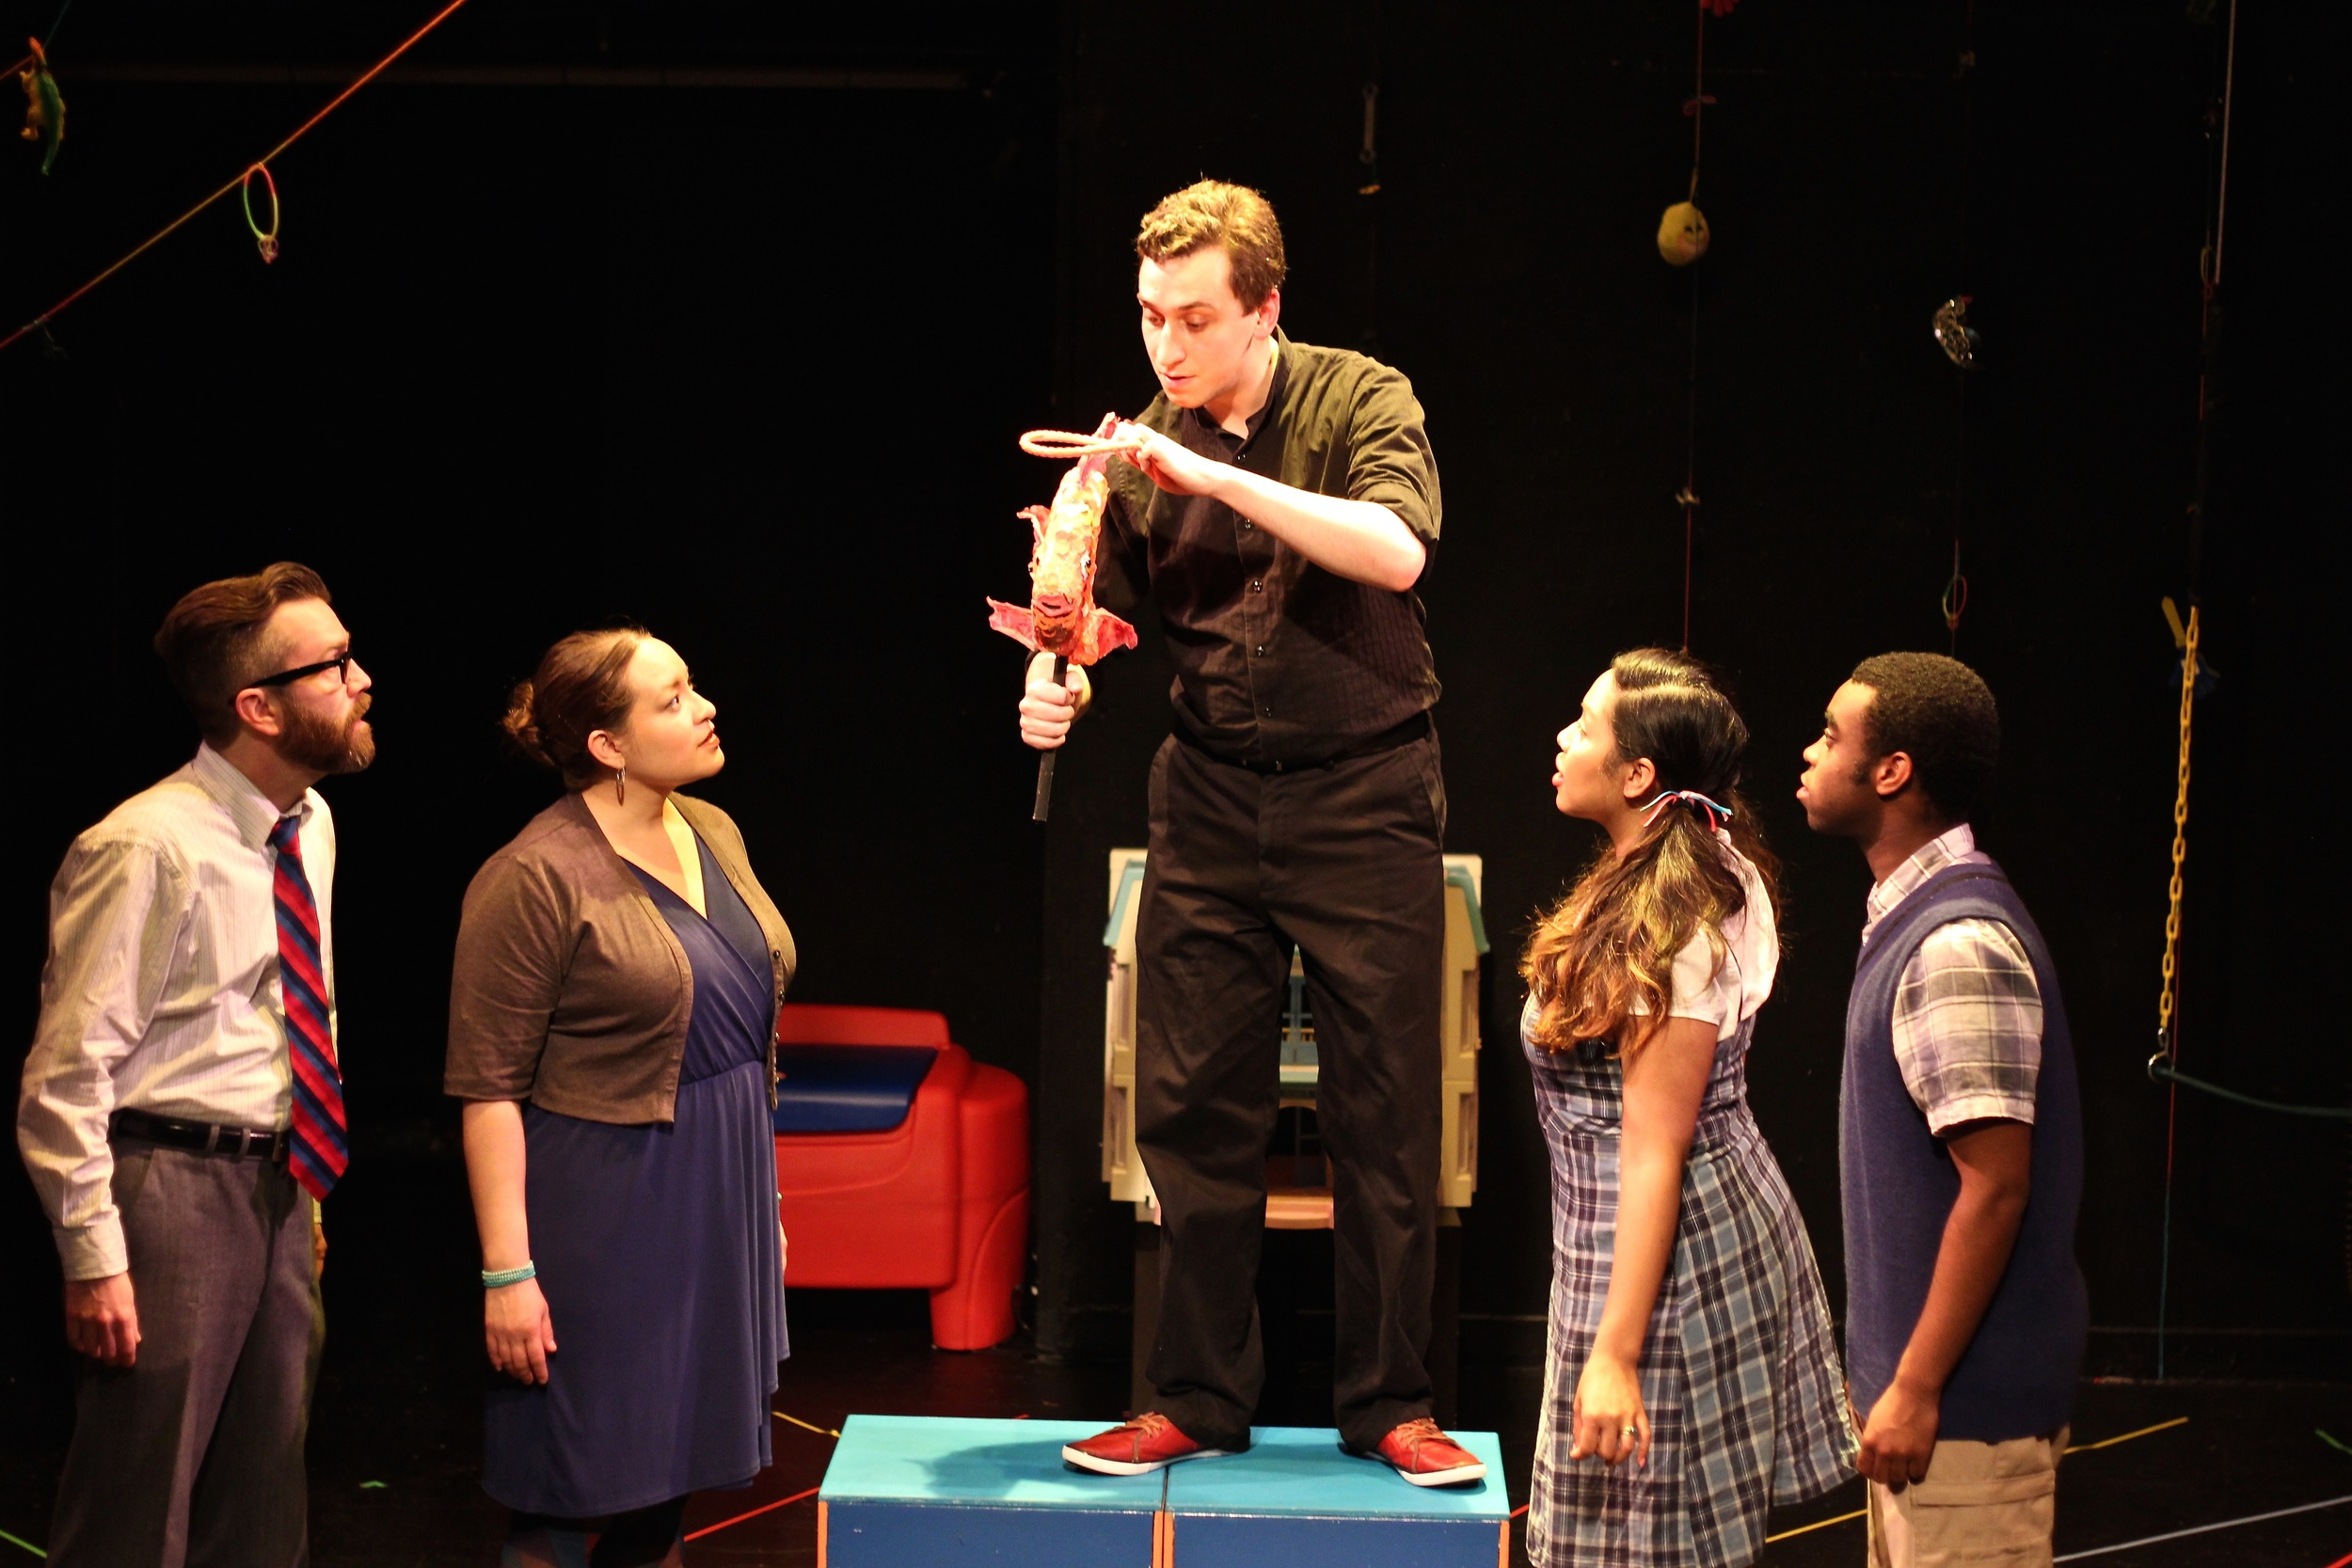 Scot Colford as Daddy, Karina Beleno Carney as Mommy, Noah Simes as And A Half,Ally Dawson as Daughtery, and Marc Pierre as Sonny